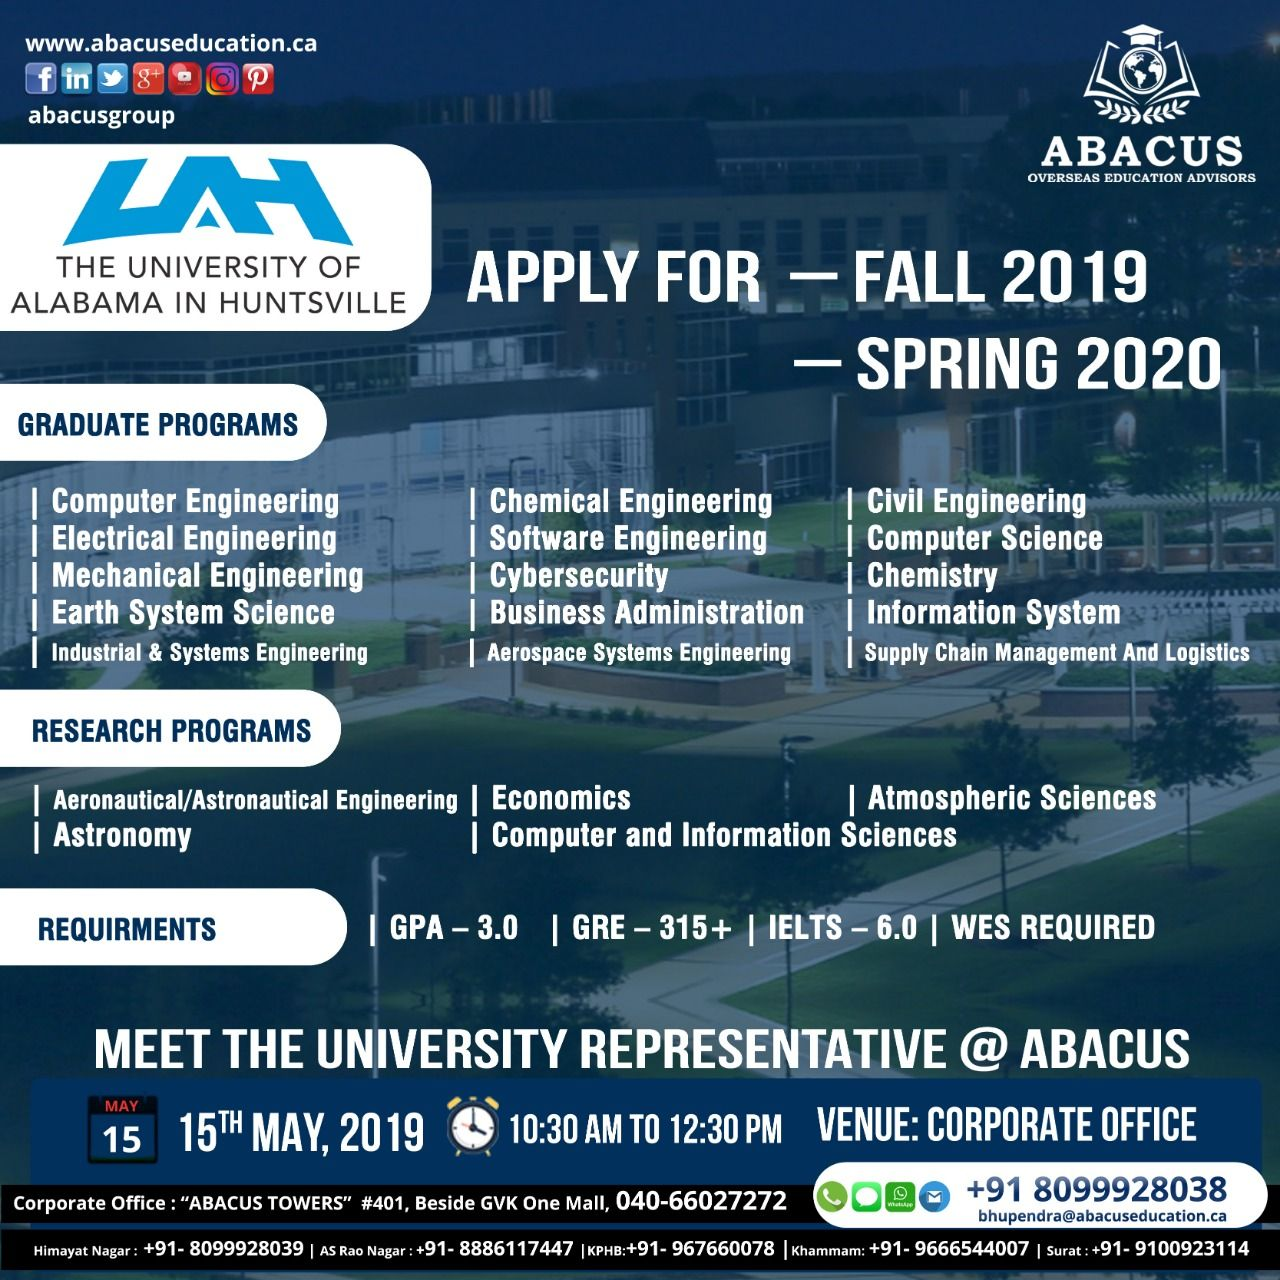 University Of Alabama Graduation 2020.Apply For Fall 2019 Spring 2020 Meet The University